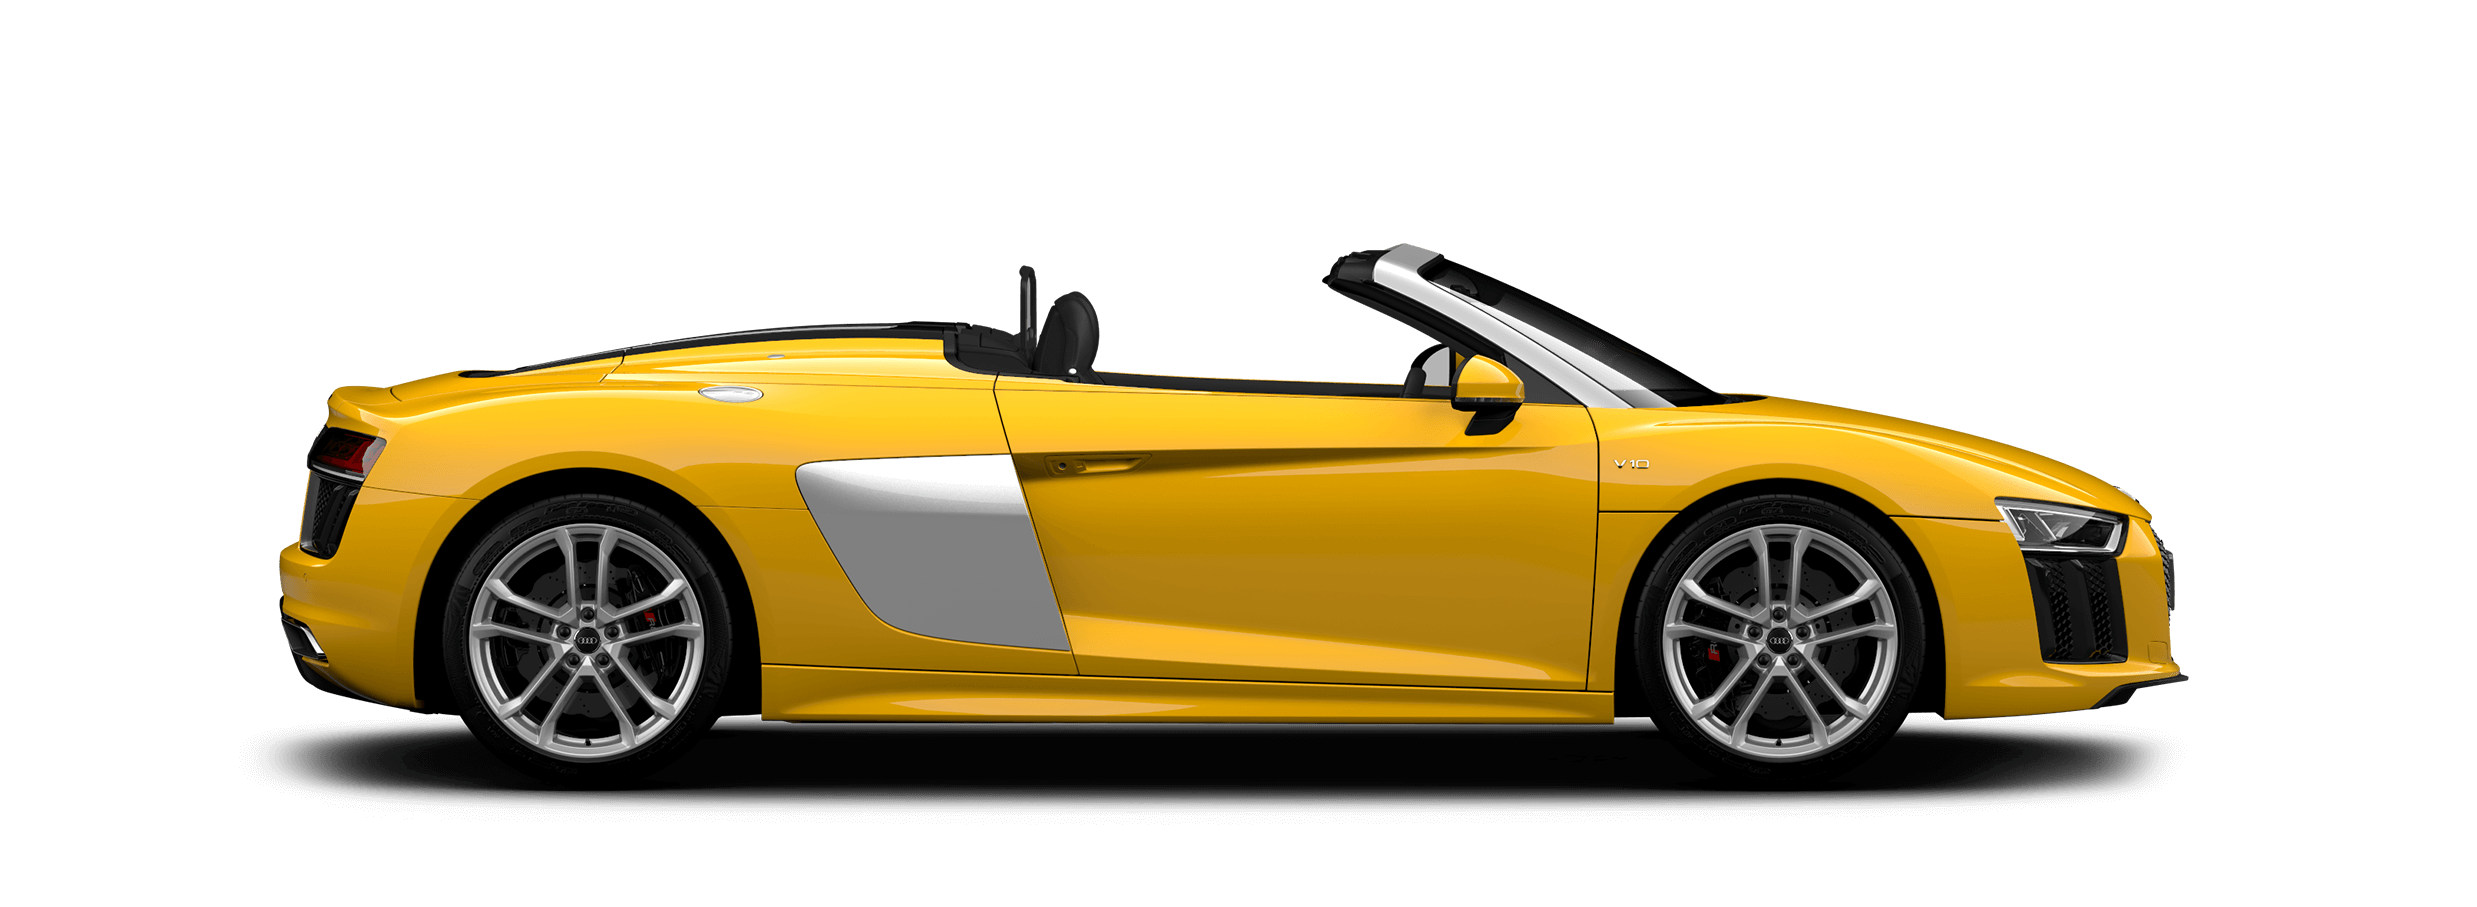 https://bluesky-cogcms.cdn.imgeng.in/media/54593/r8-spyder.png